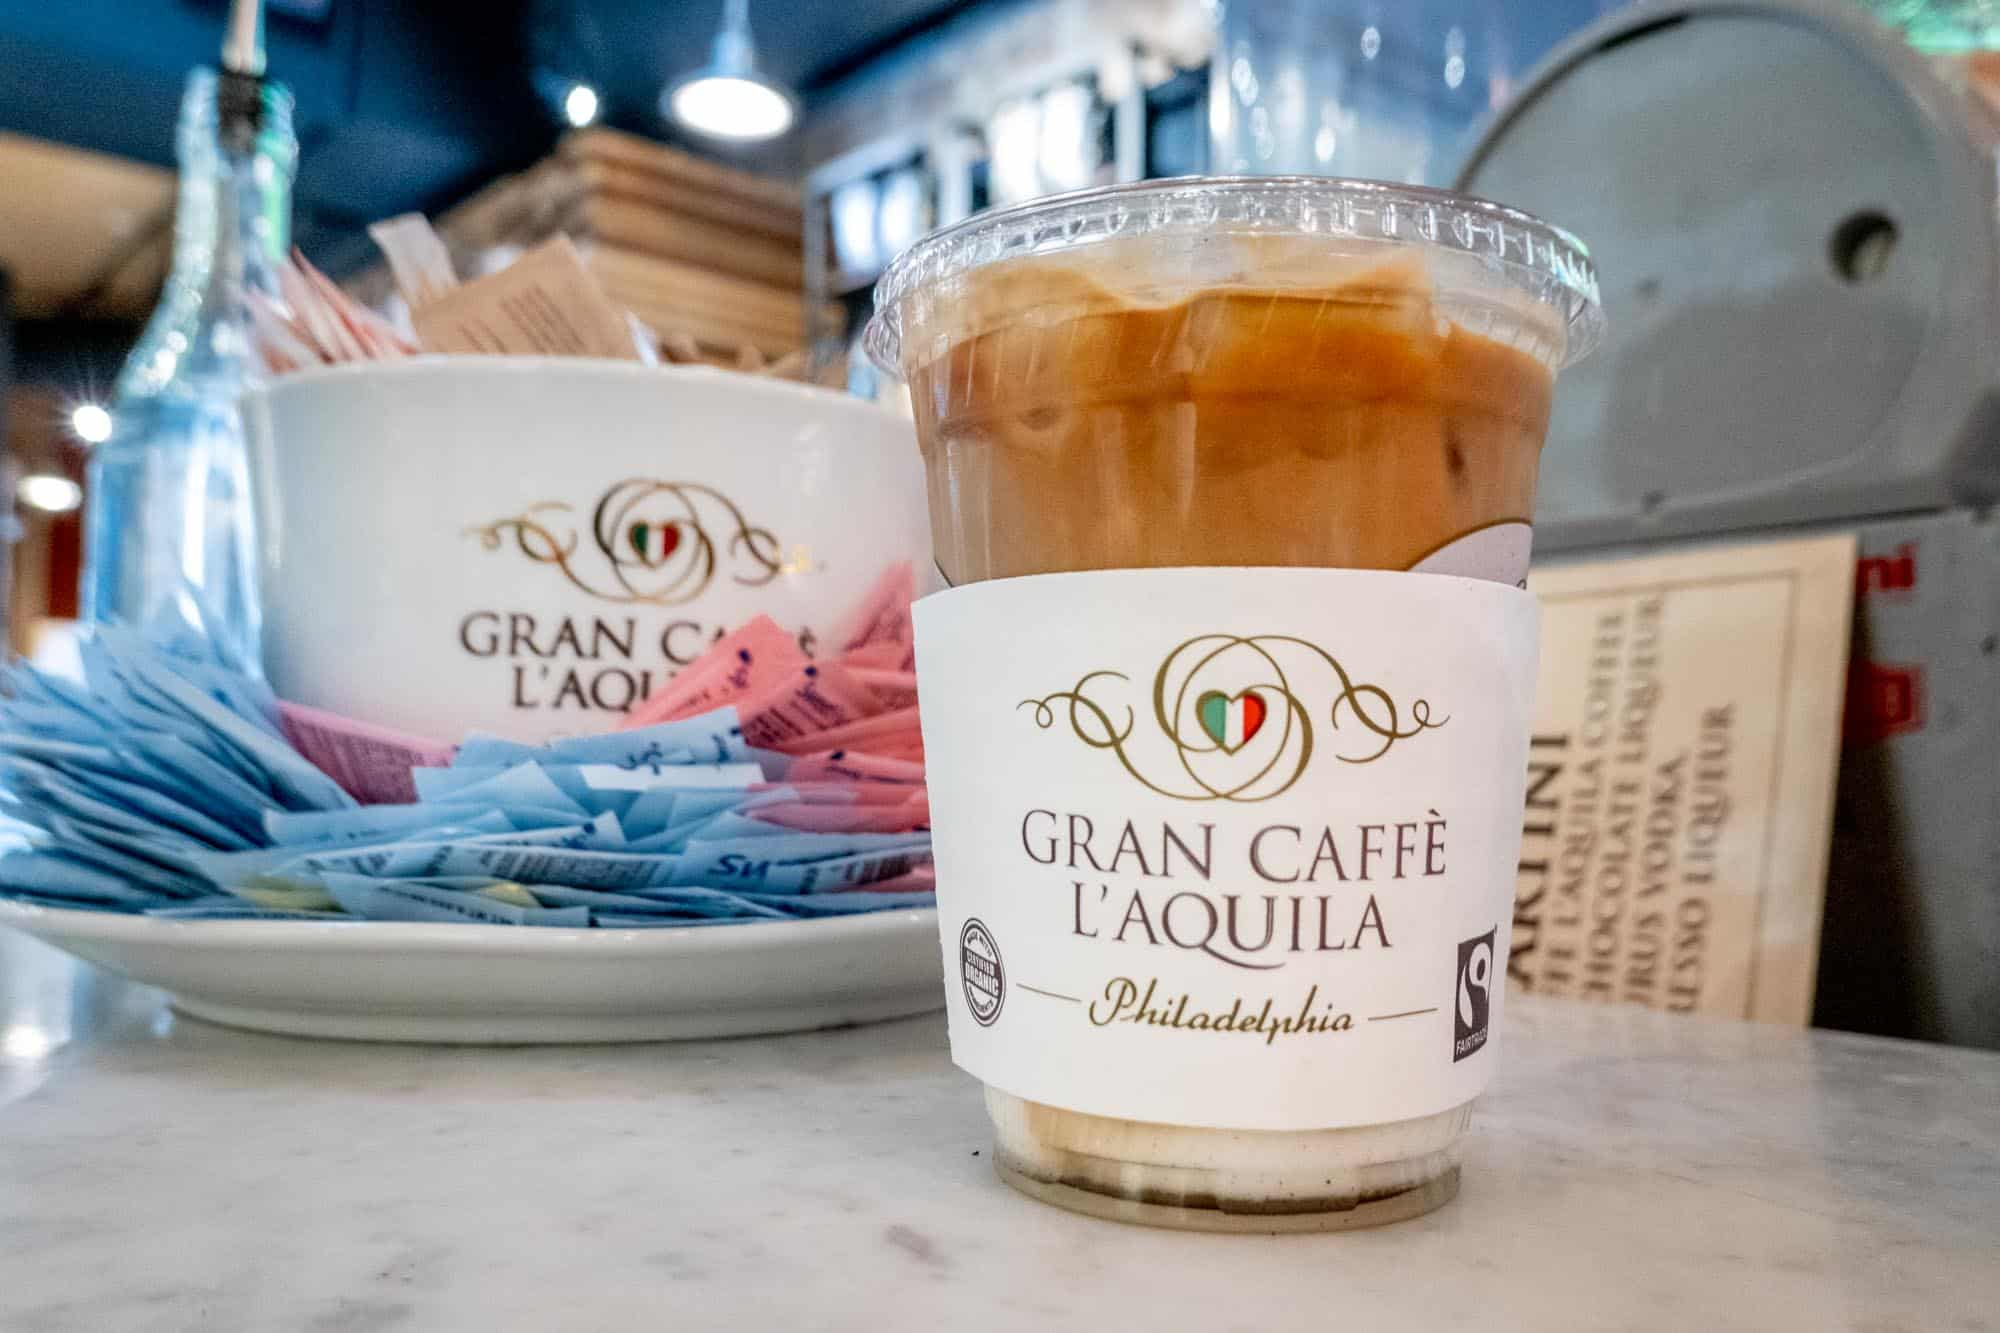 """Cup of iced coffee on a counter with a sleeve labeled """"Gran Caffe L'Aquila: Philadelphia"""""""